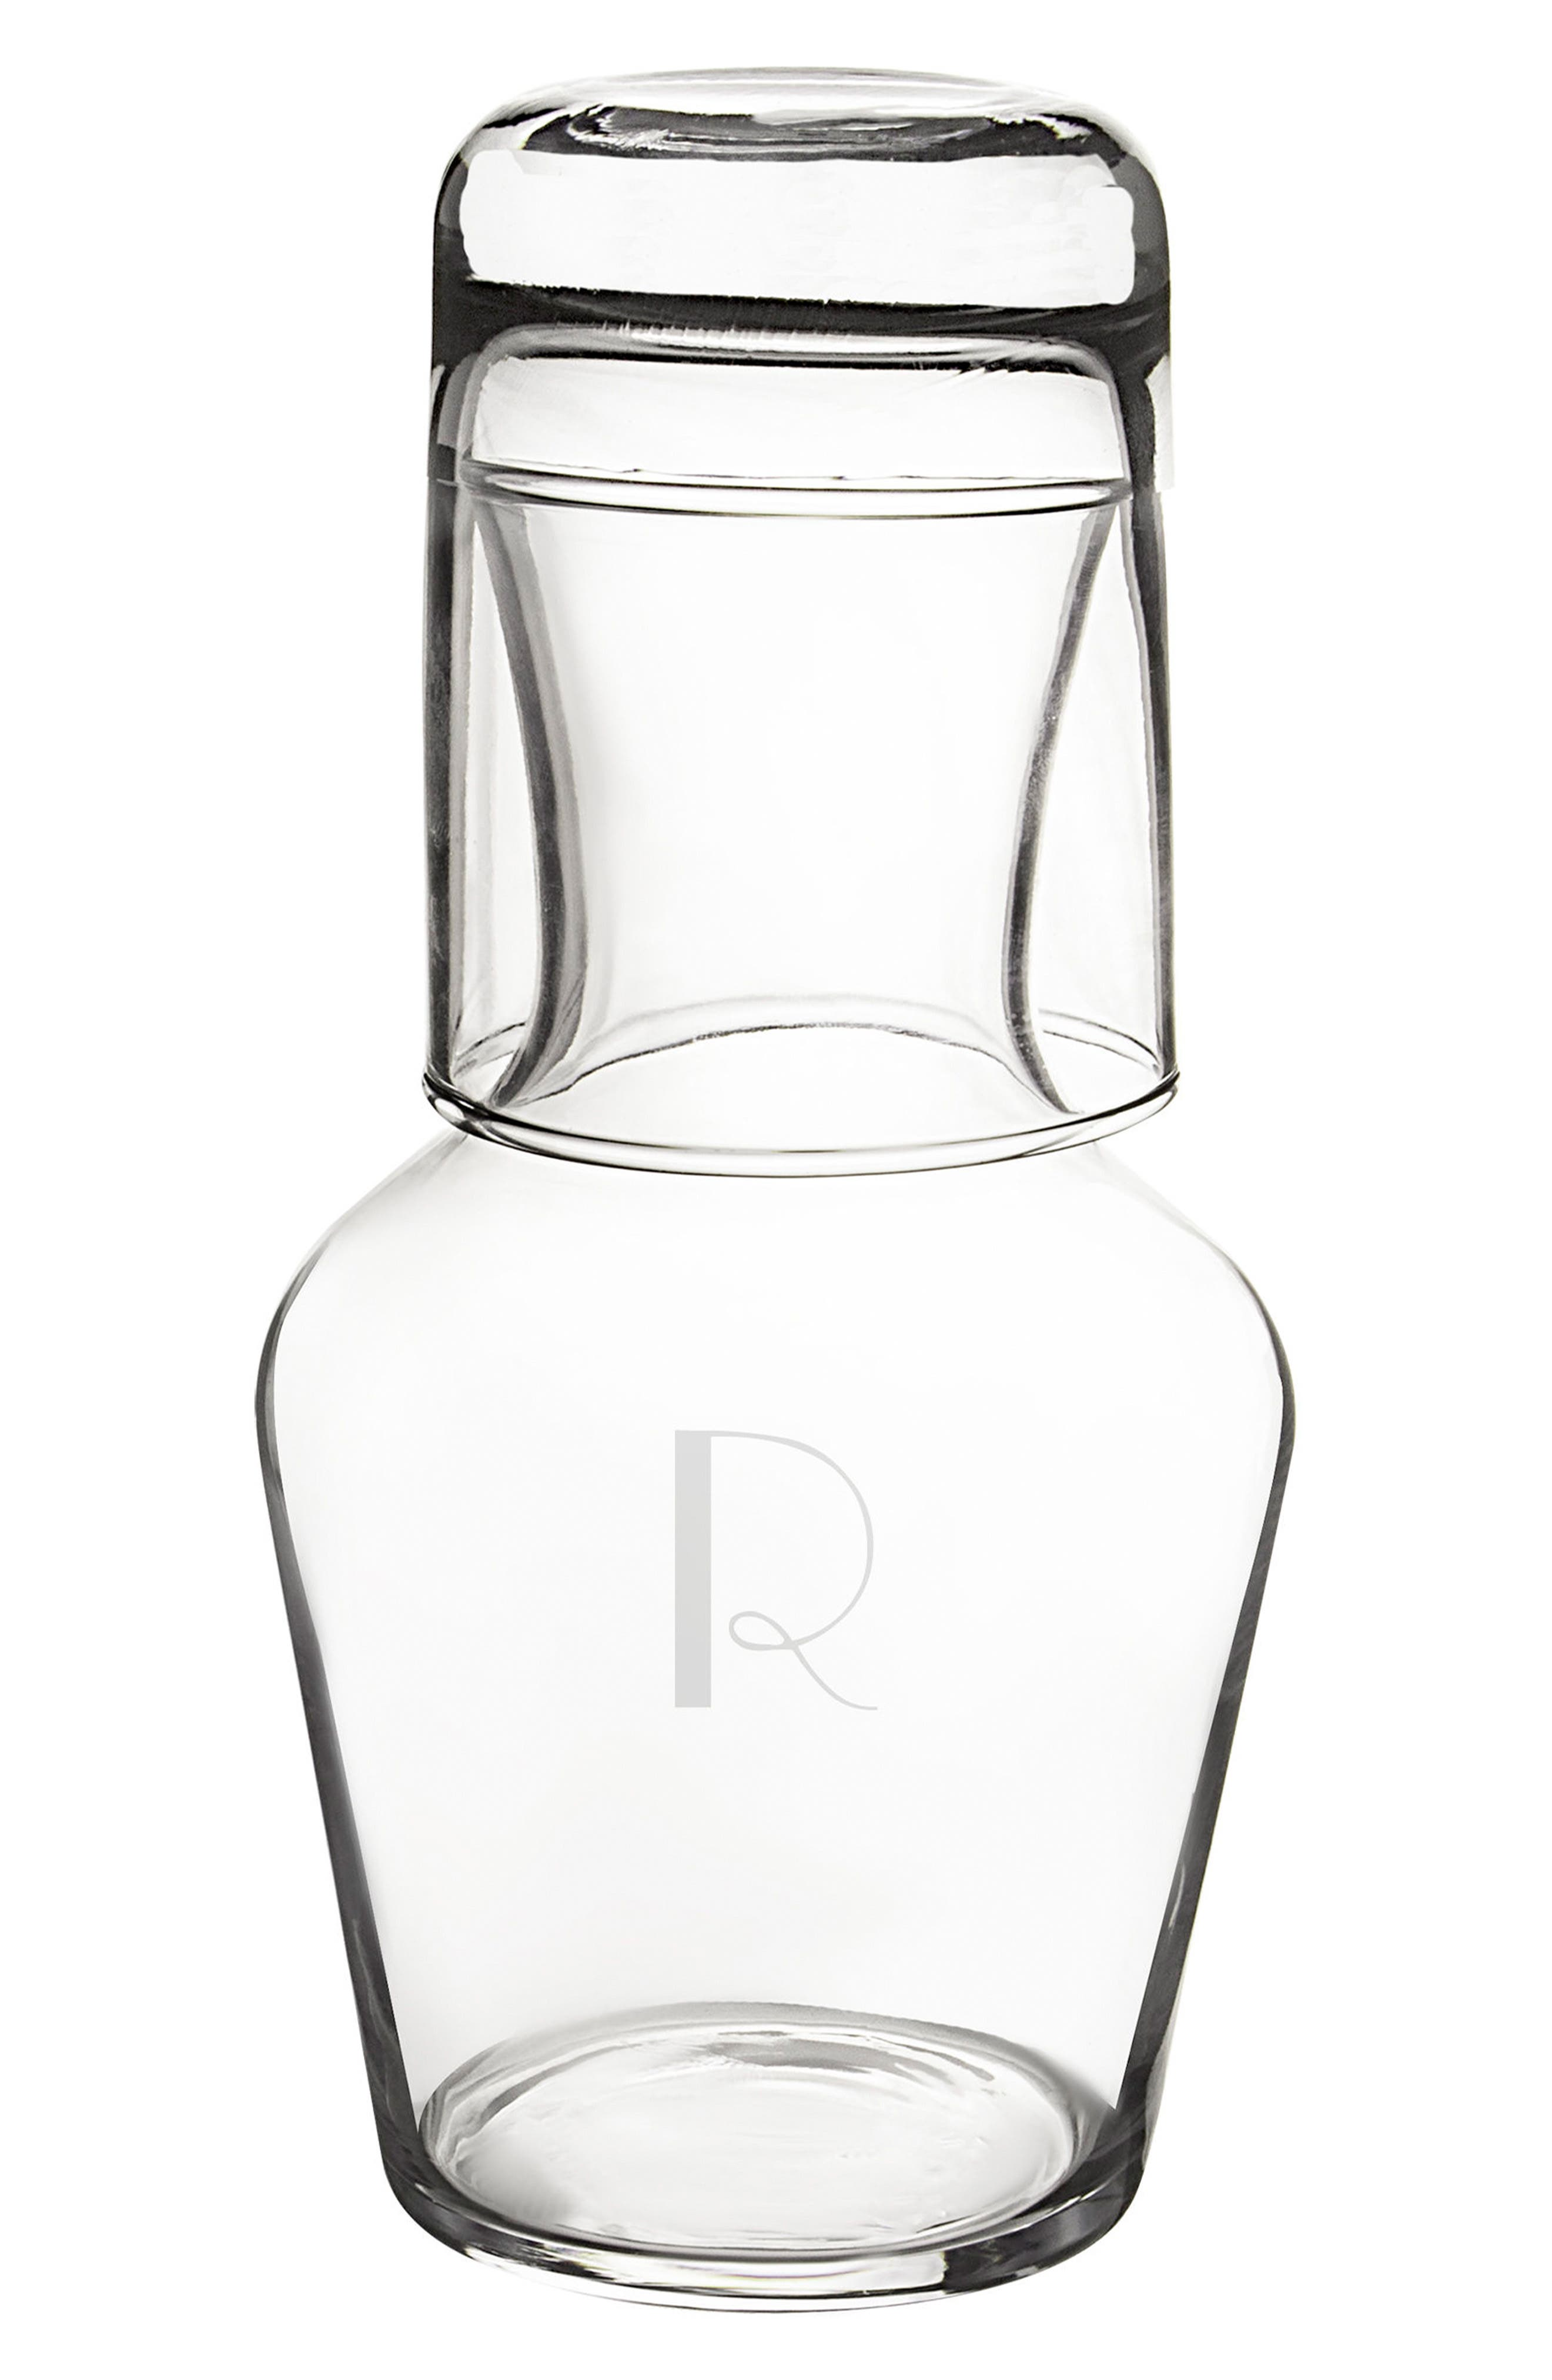 Alternate Image 1 Selected - Cathy's Concepts Bedside Water Carafe & Glass Set